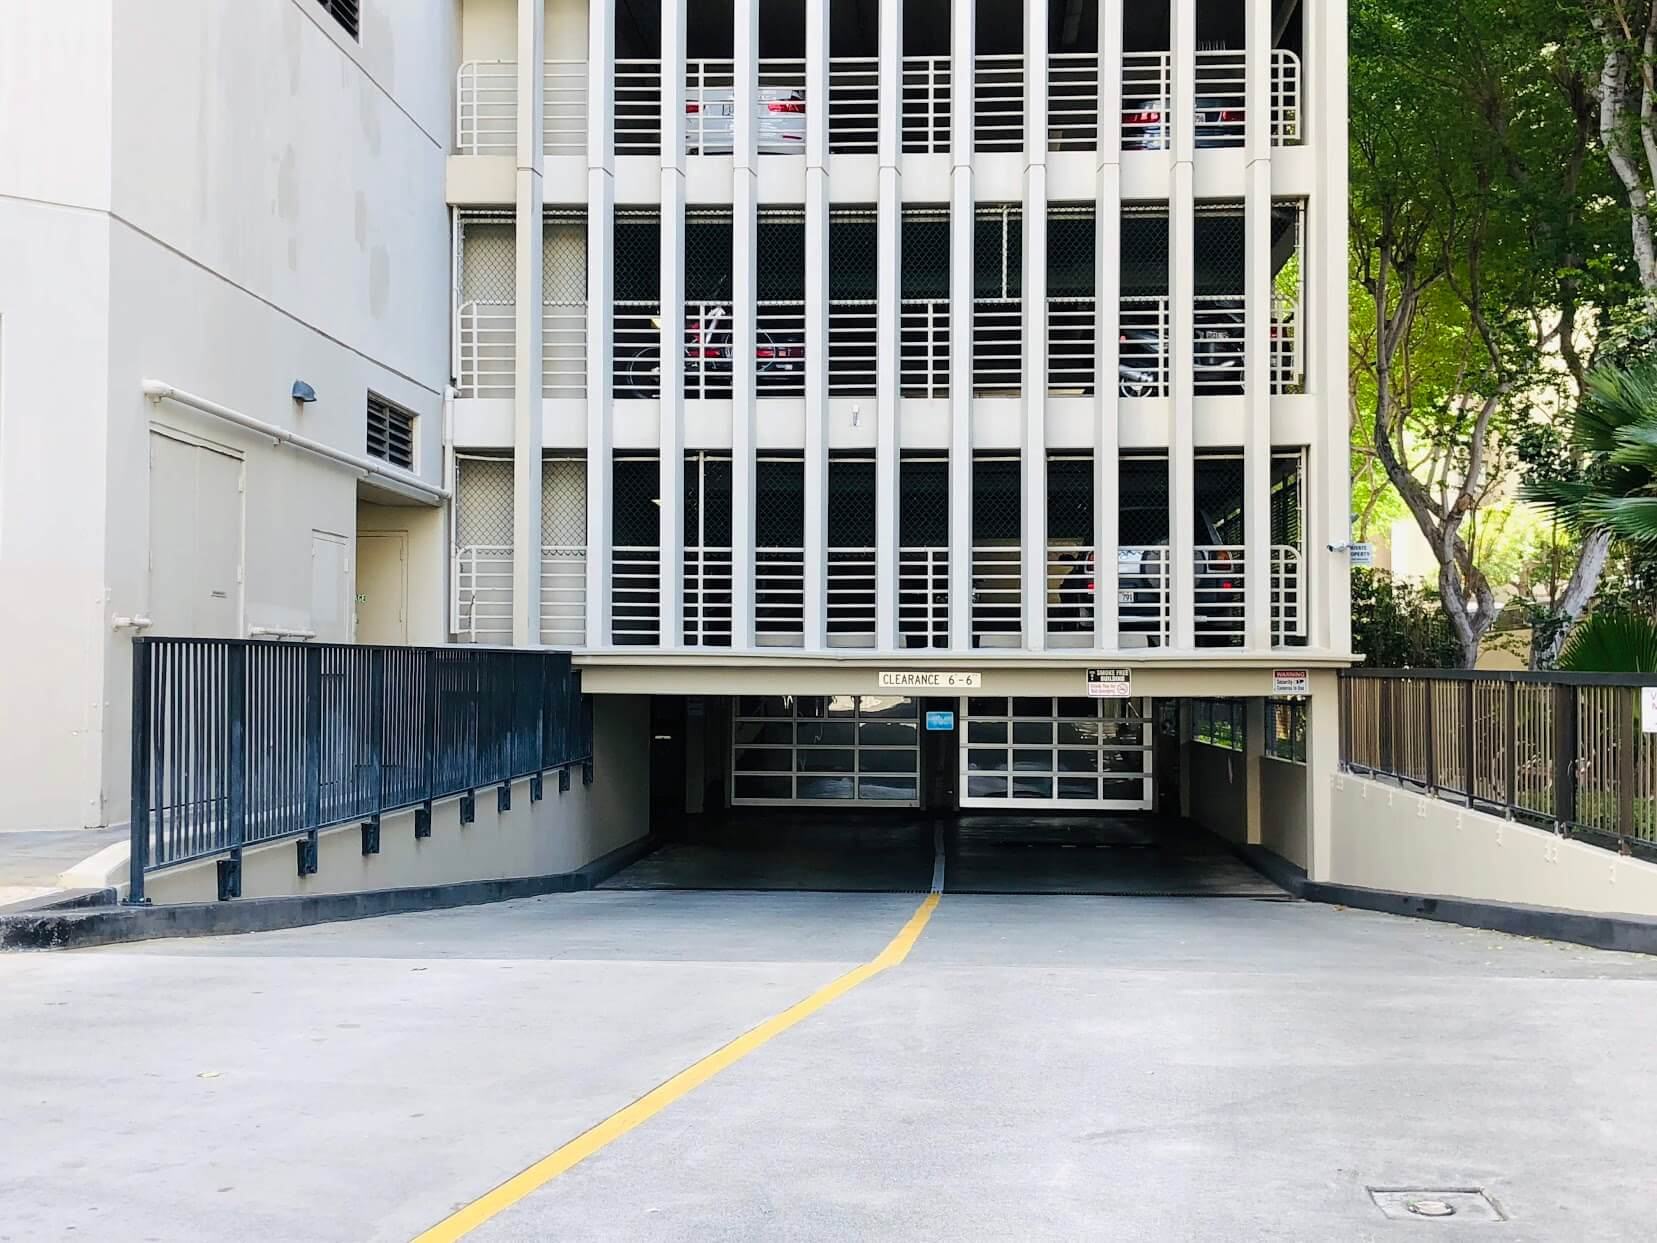 Iolani Court Plazaの駐車場